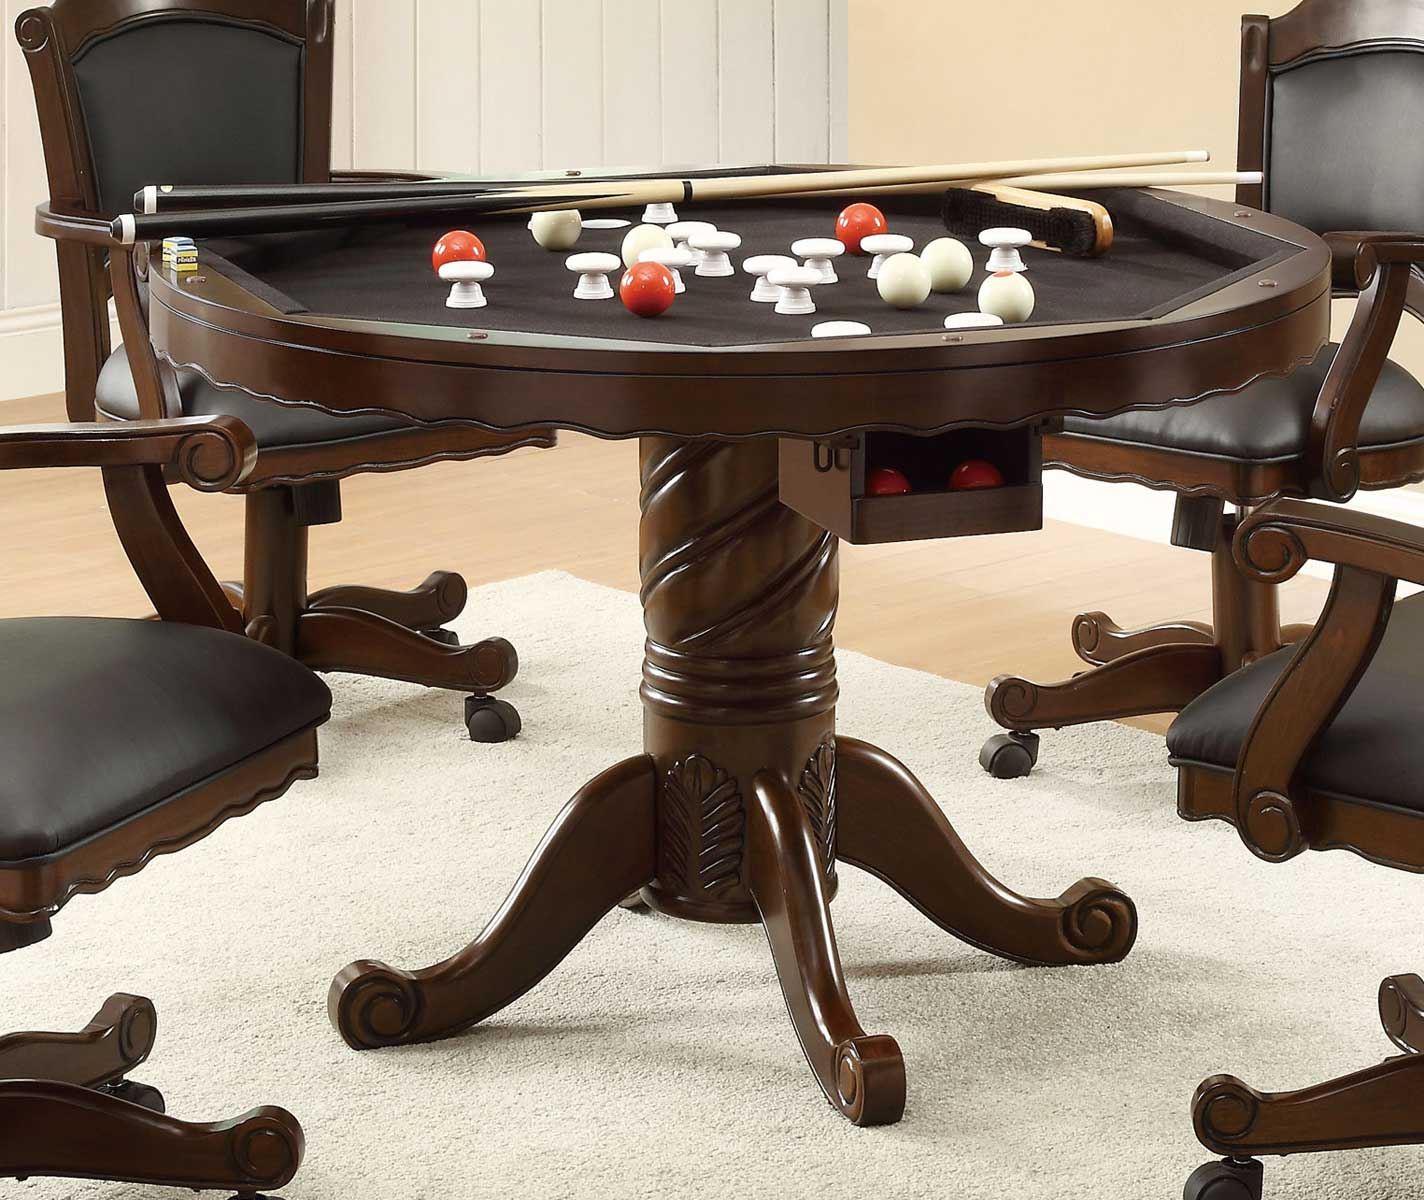 Coaster Turk 3-in-One Game Table - Cherry